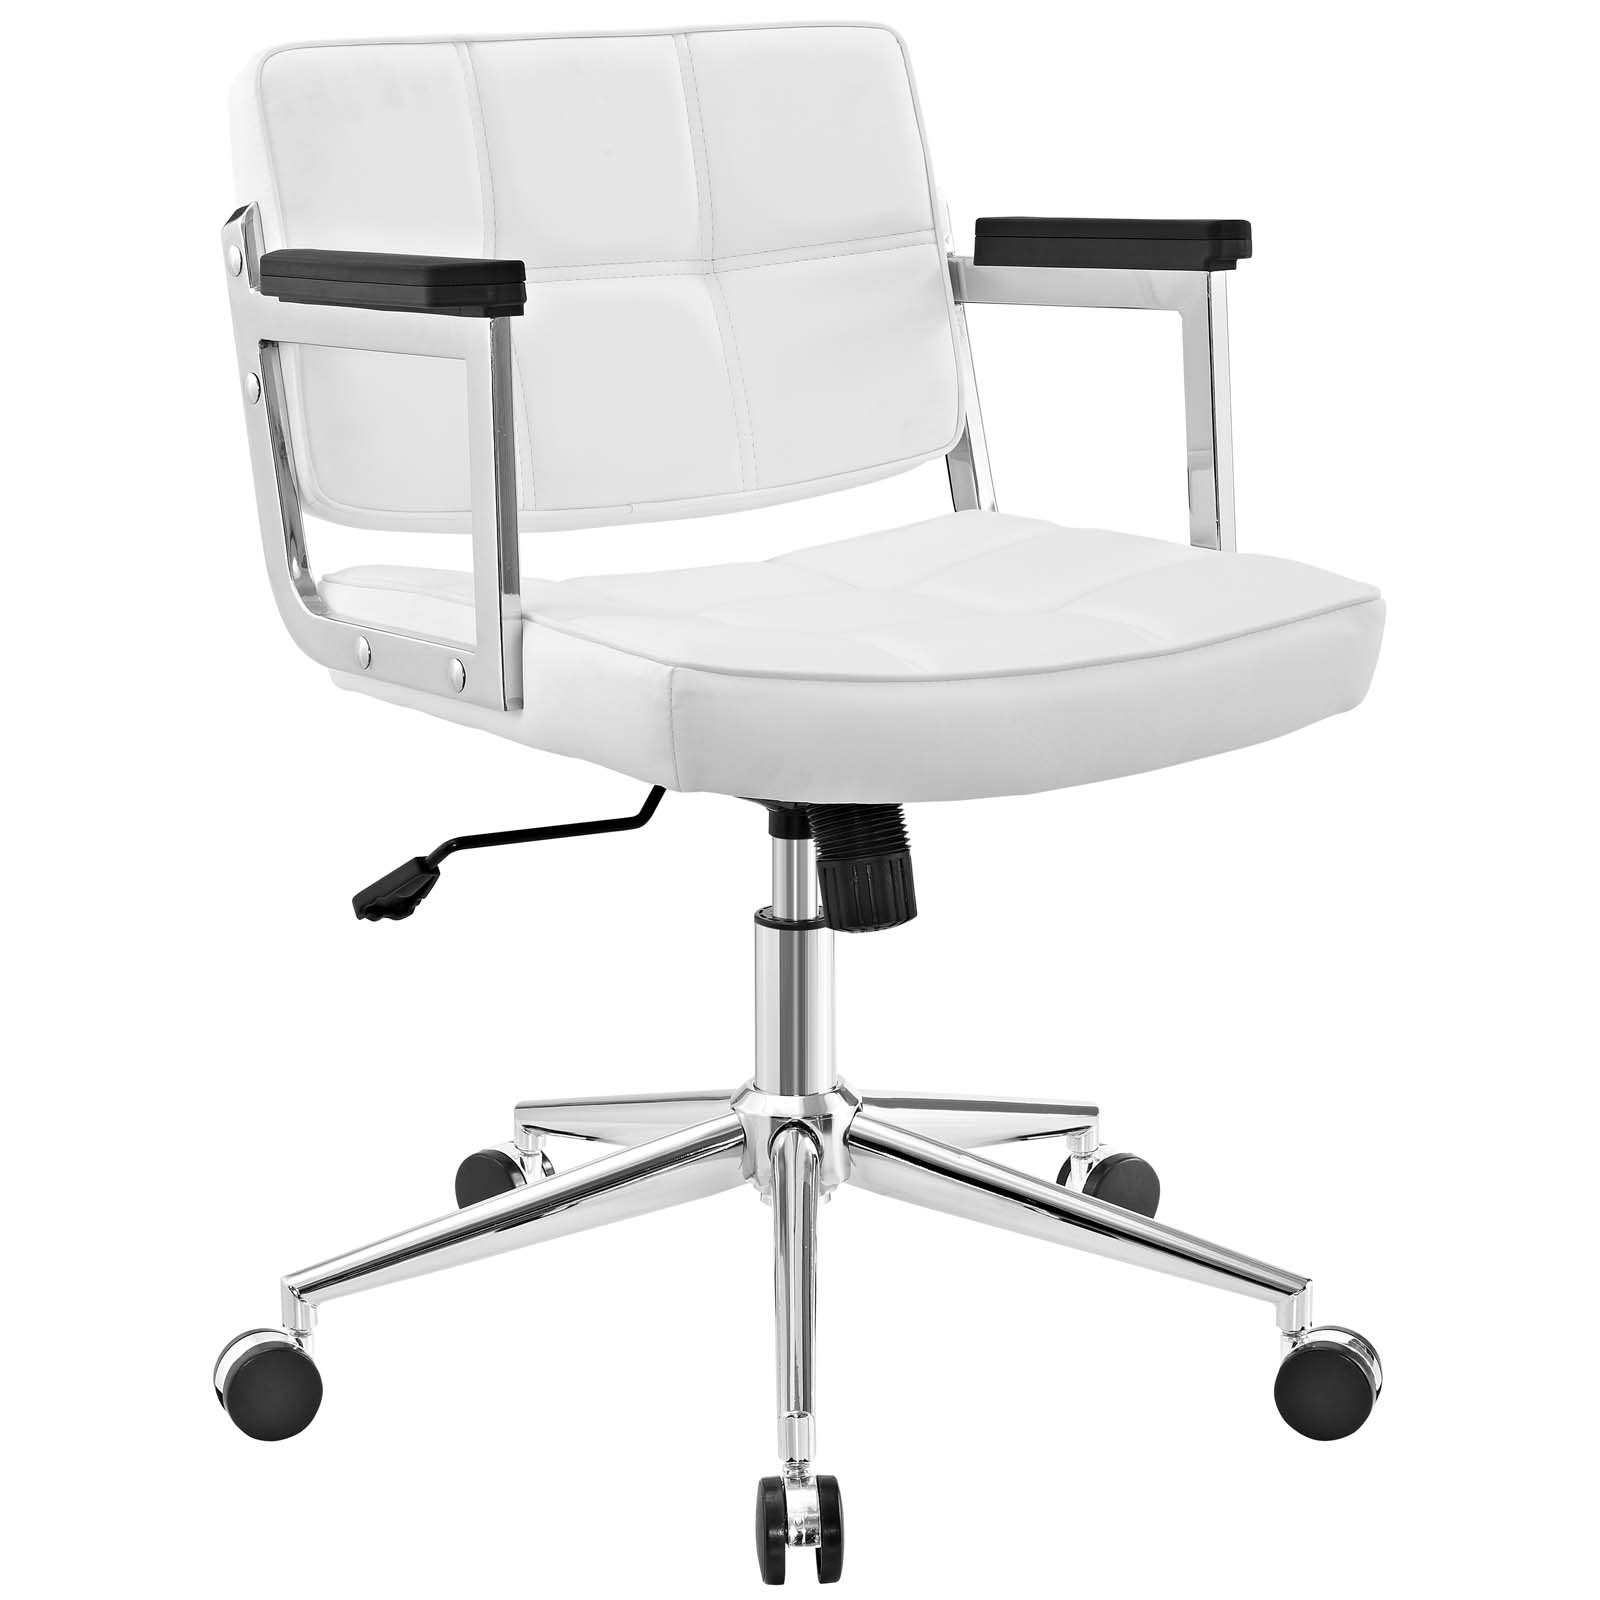 White leather office chair White Quilted Modern Contemporary Urban Design Work Home Office Mid Back Office Chair White Faux Leather Walmart White Office Chairs